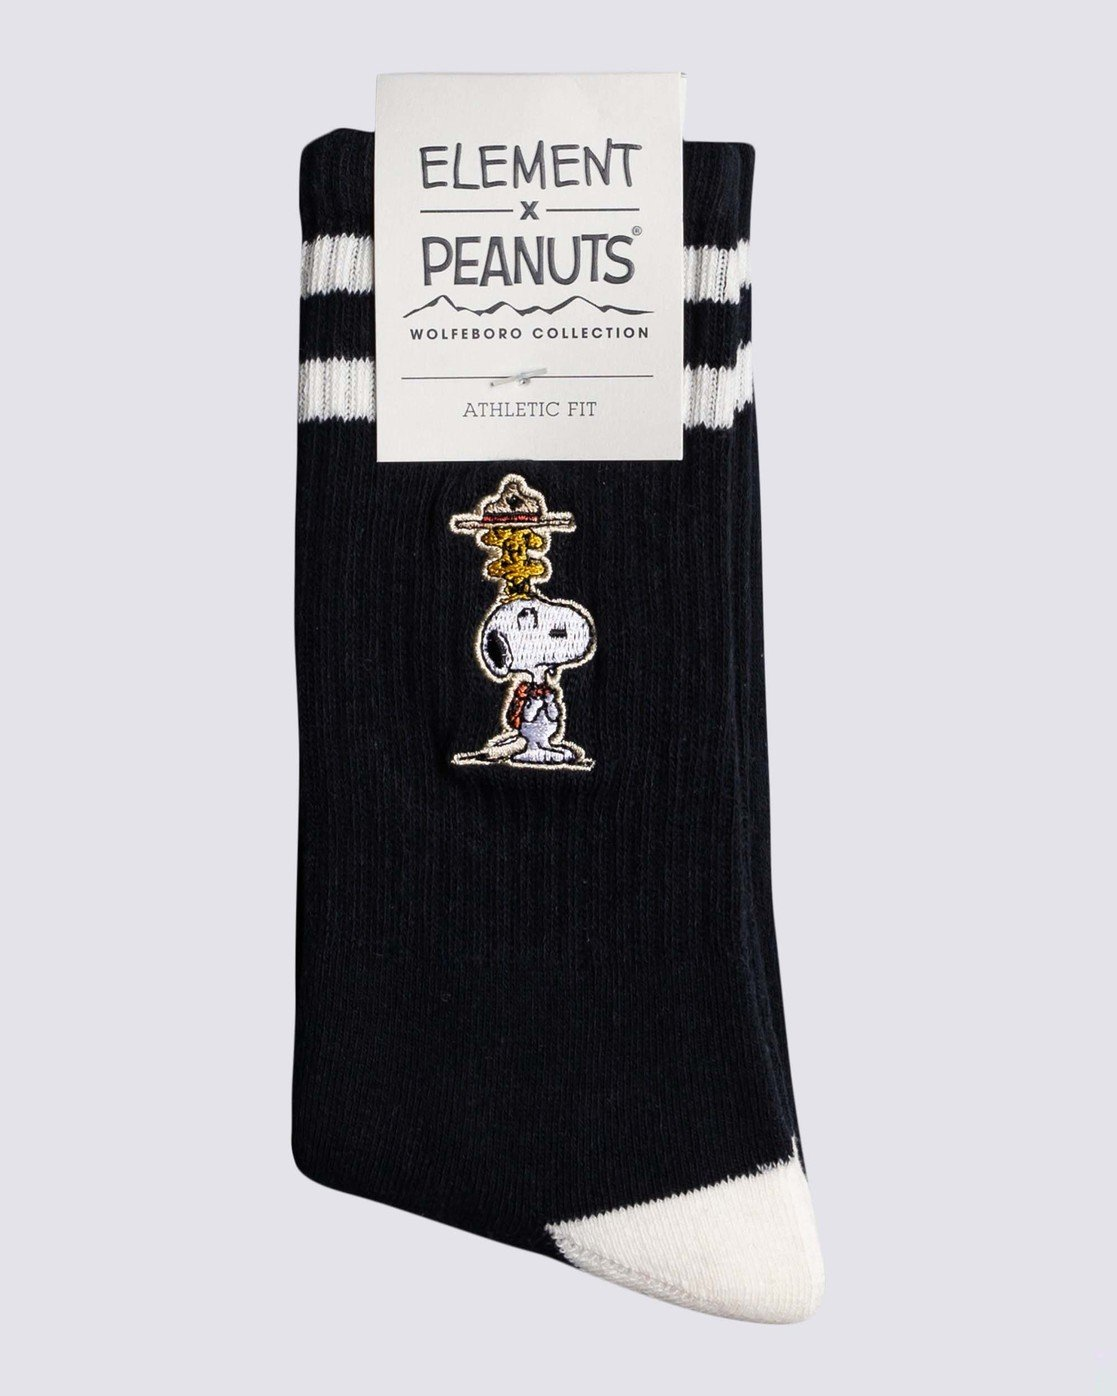 1 Peanuts x Element Socks  ALYAA00106 Element